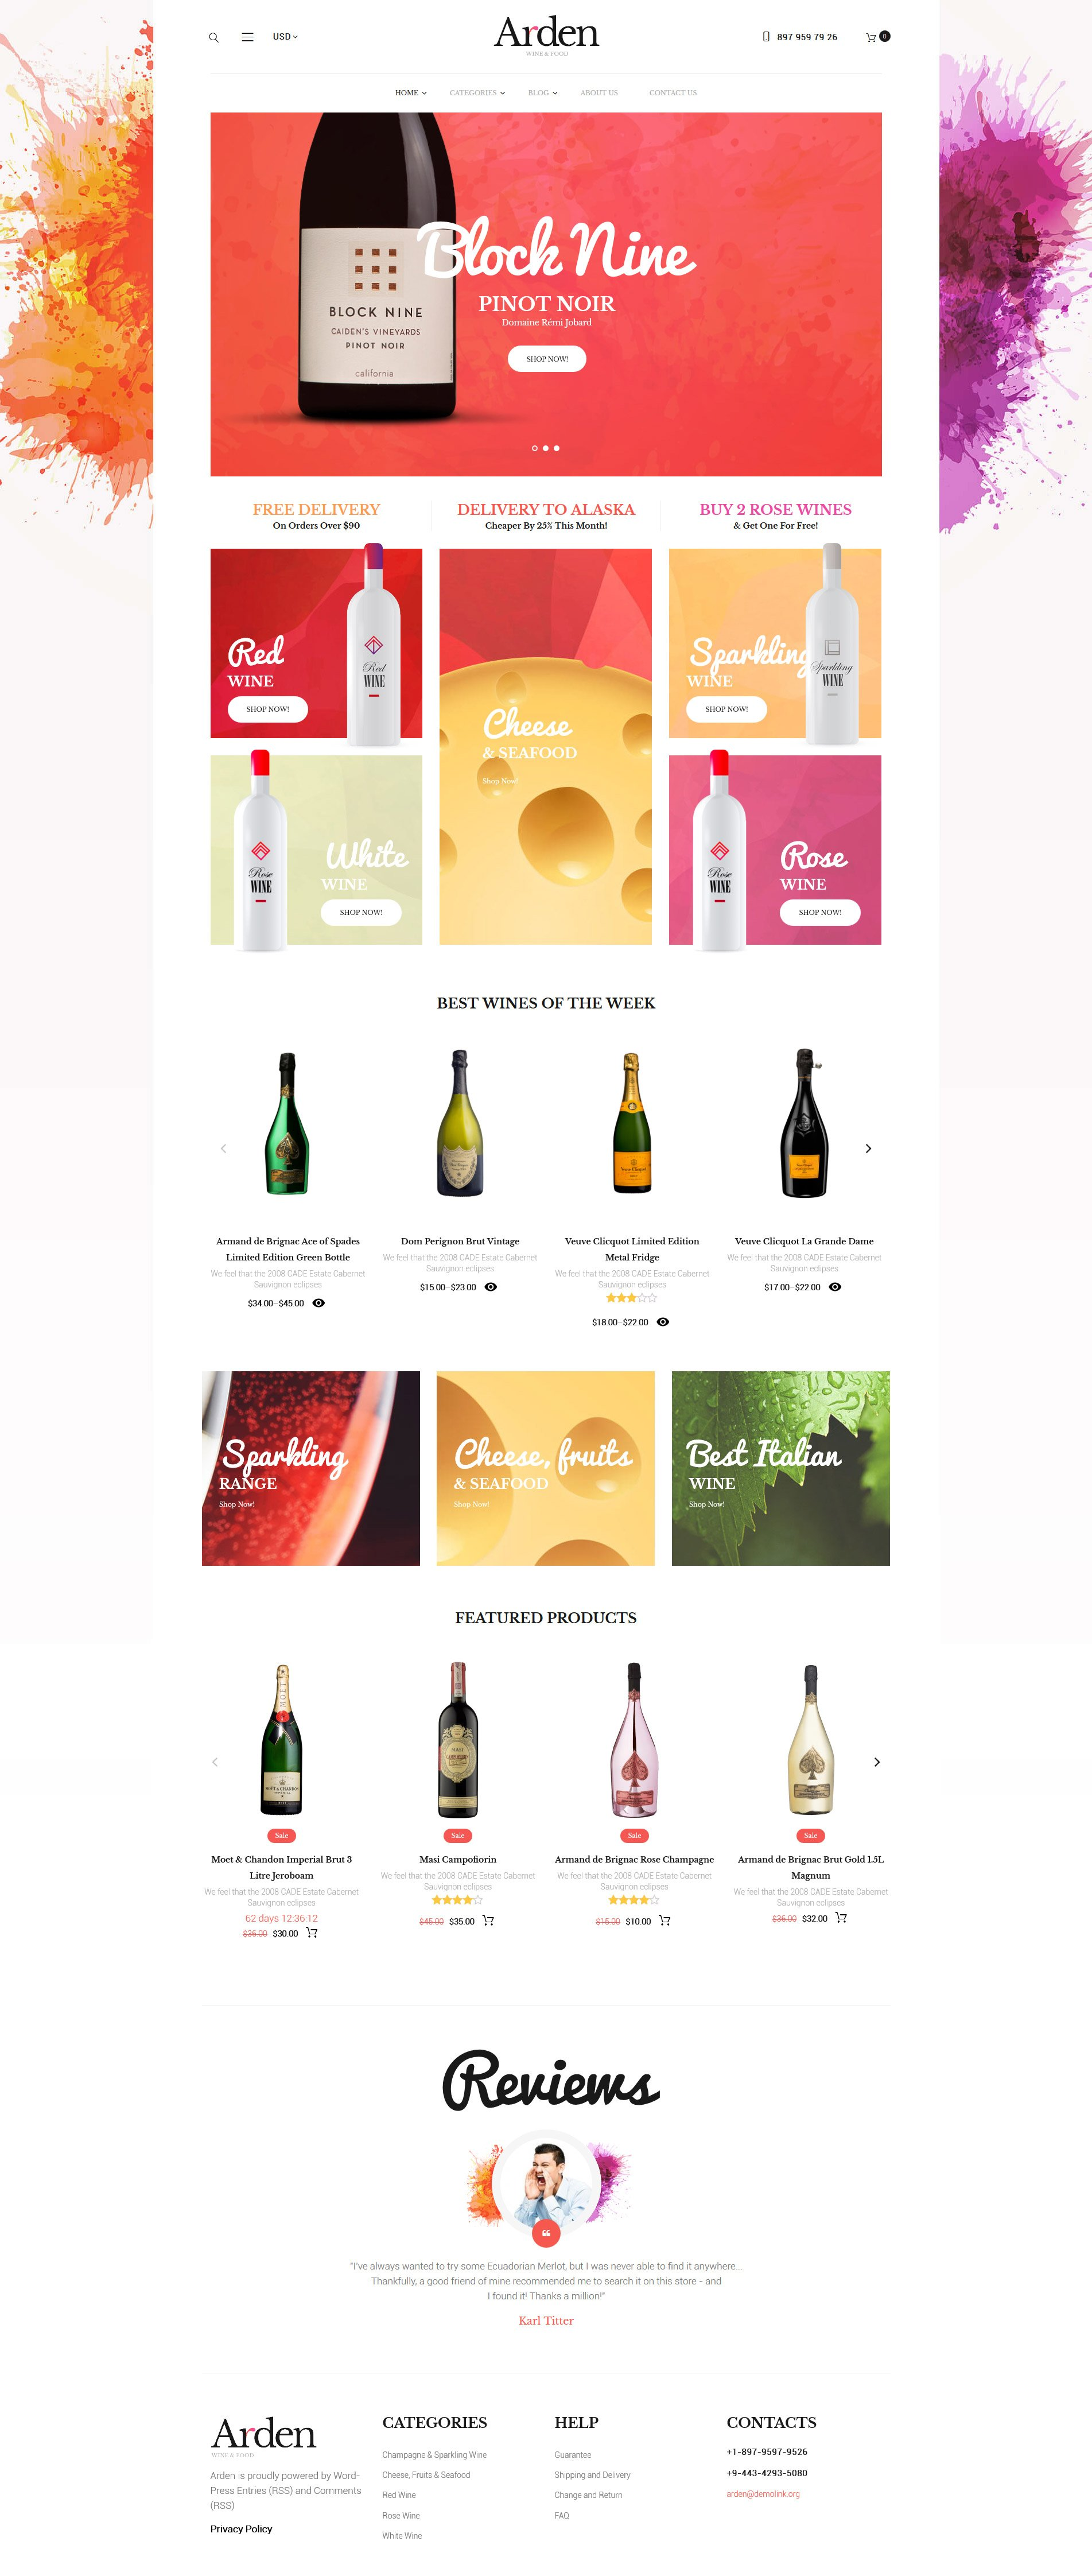 Arden - Wine And Food Online Store №59046 - скриншот